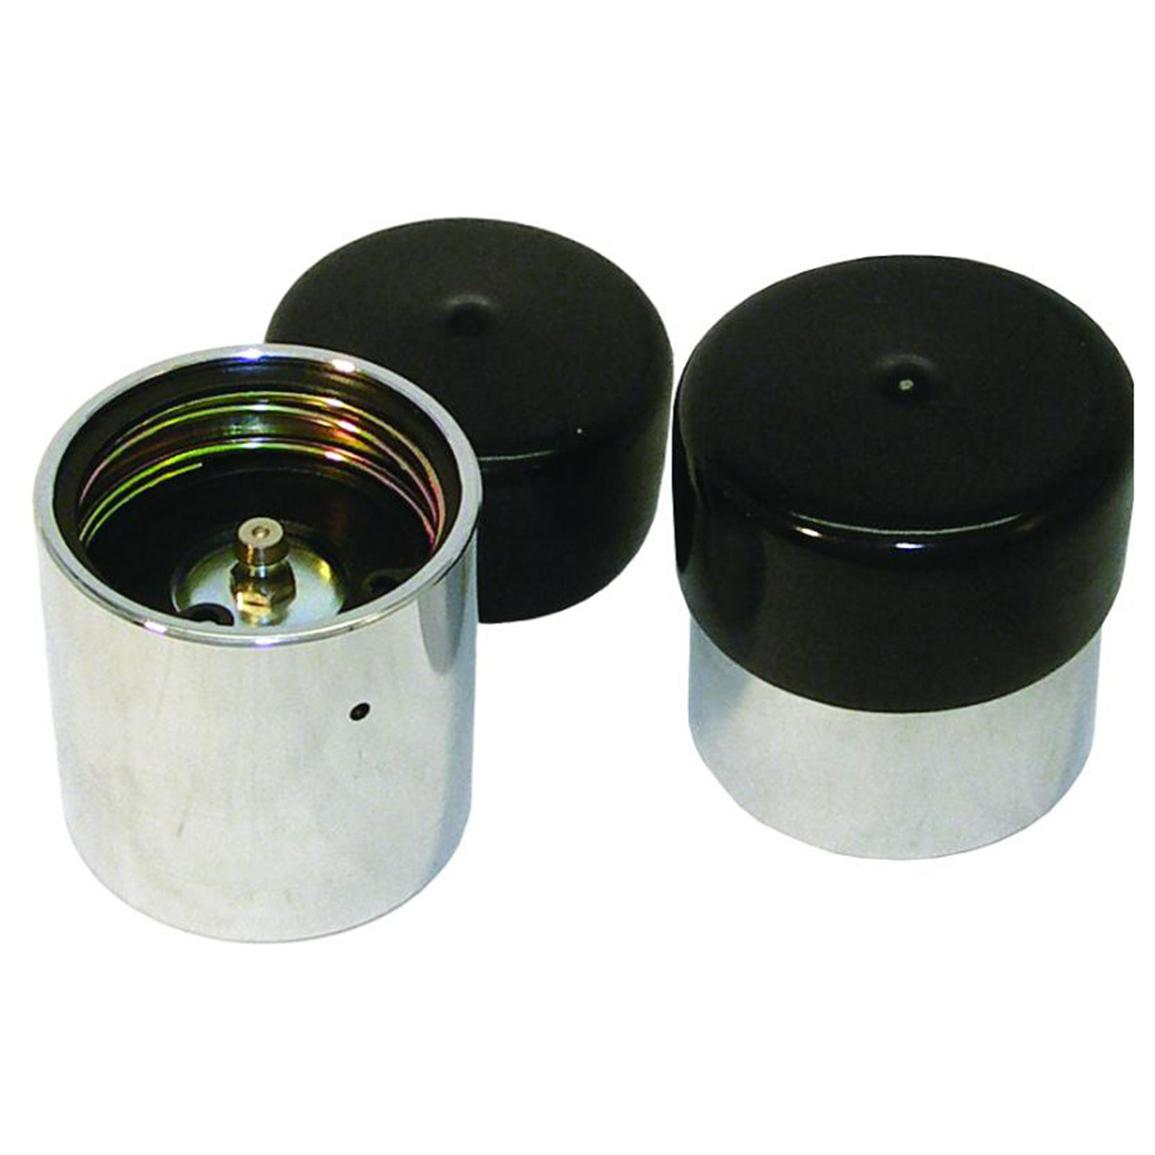 Invincible Marine Bearing Protectors With Cover